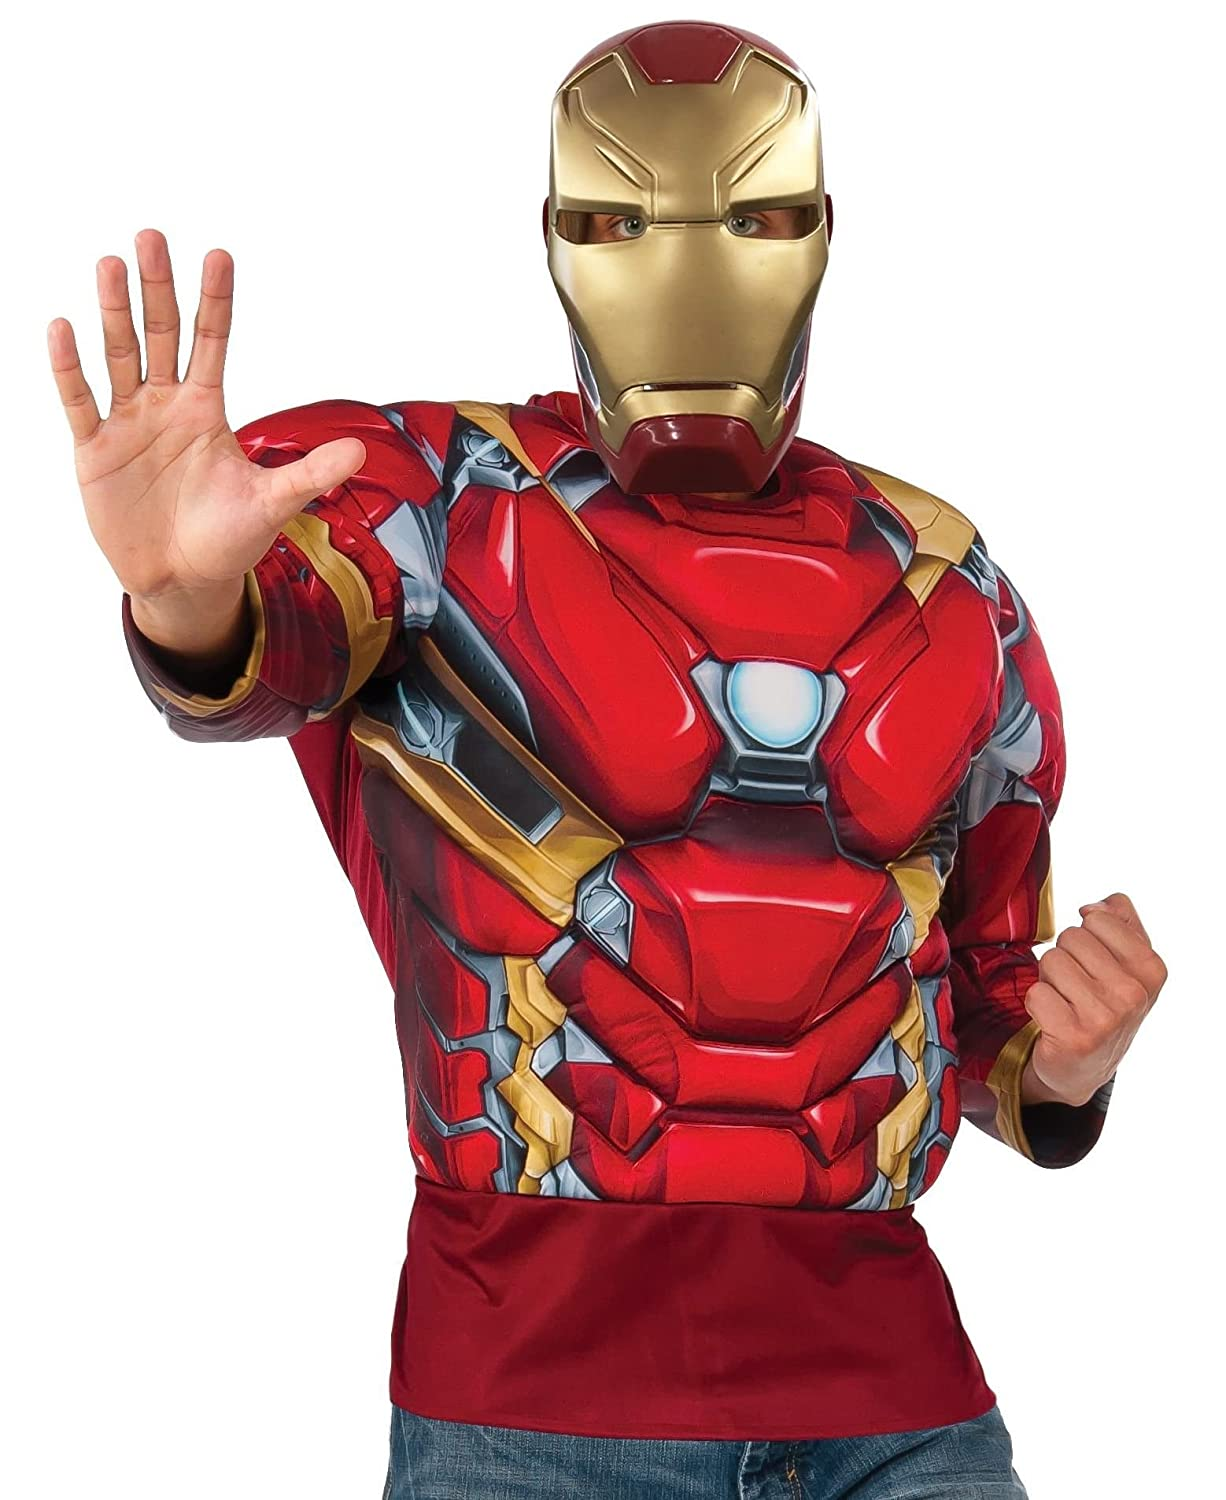 Rubie's Men's Captain America: Civil War Muscle Chest Iron Man Long Sleeve Costume Top Rubies Costumes - Apparel 810975